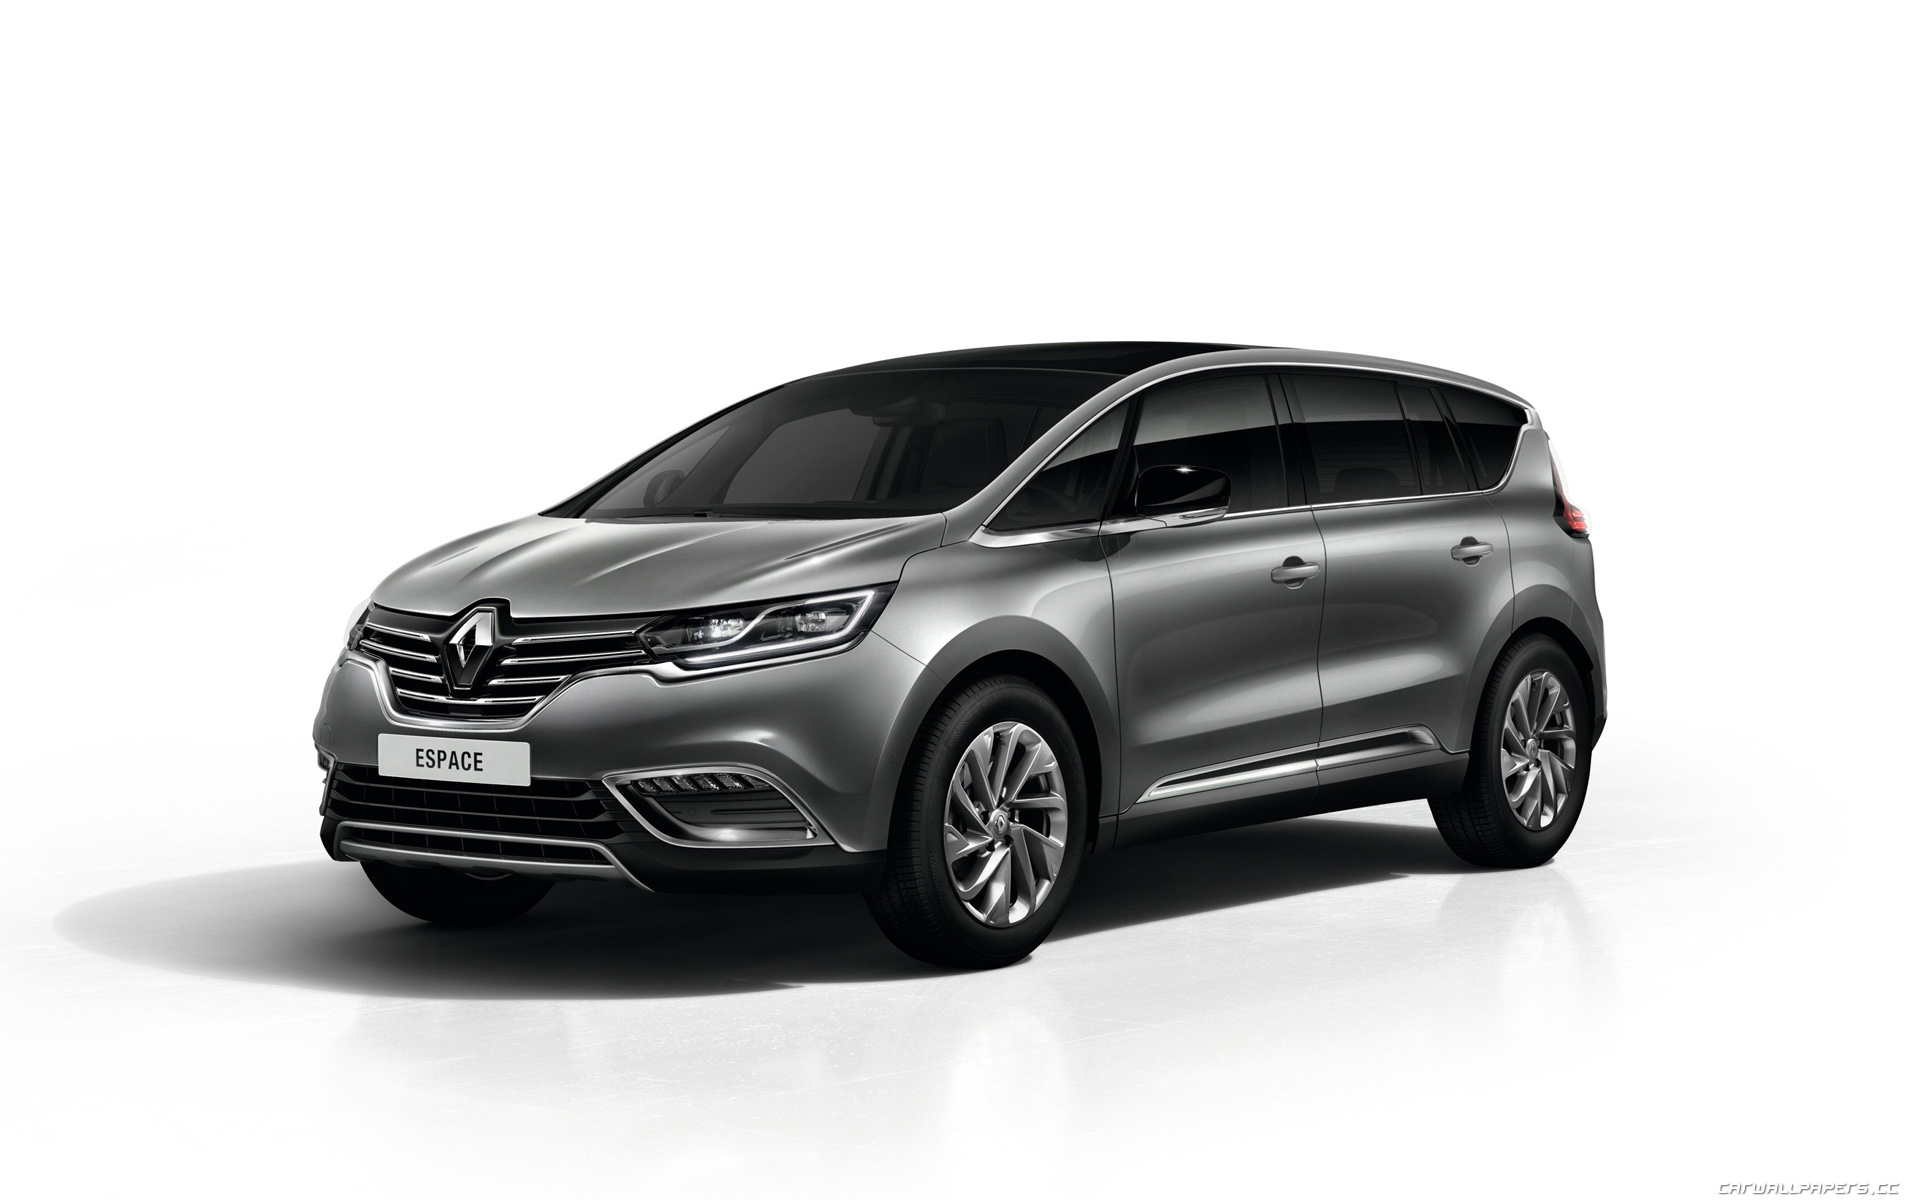 renault espace prepara se para receber novo motor de 225cv. Black Bedroom Furniture Sets. Home Design Ideas